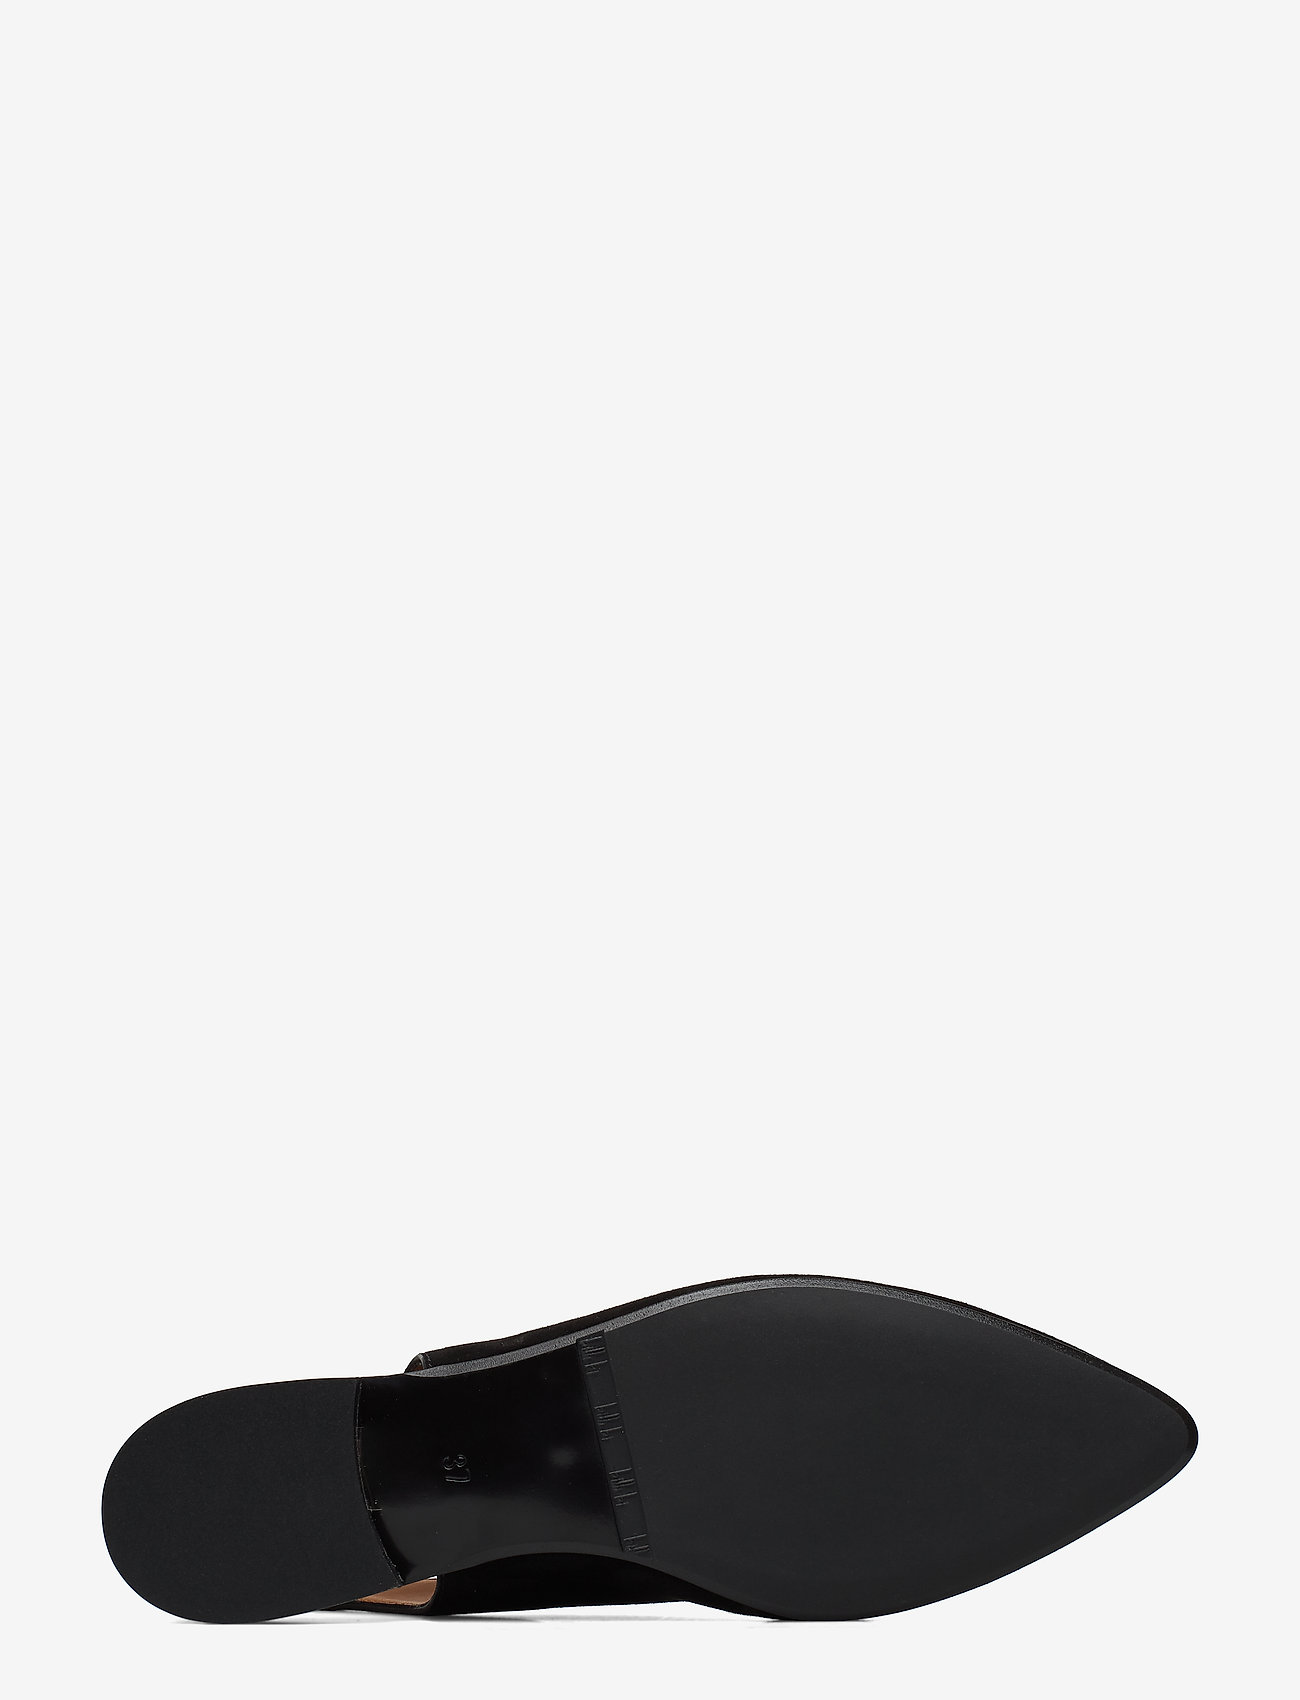 Shoes 4106 (Black Suede 50) (104.30 €) - Billi Bi Nqnoo